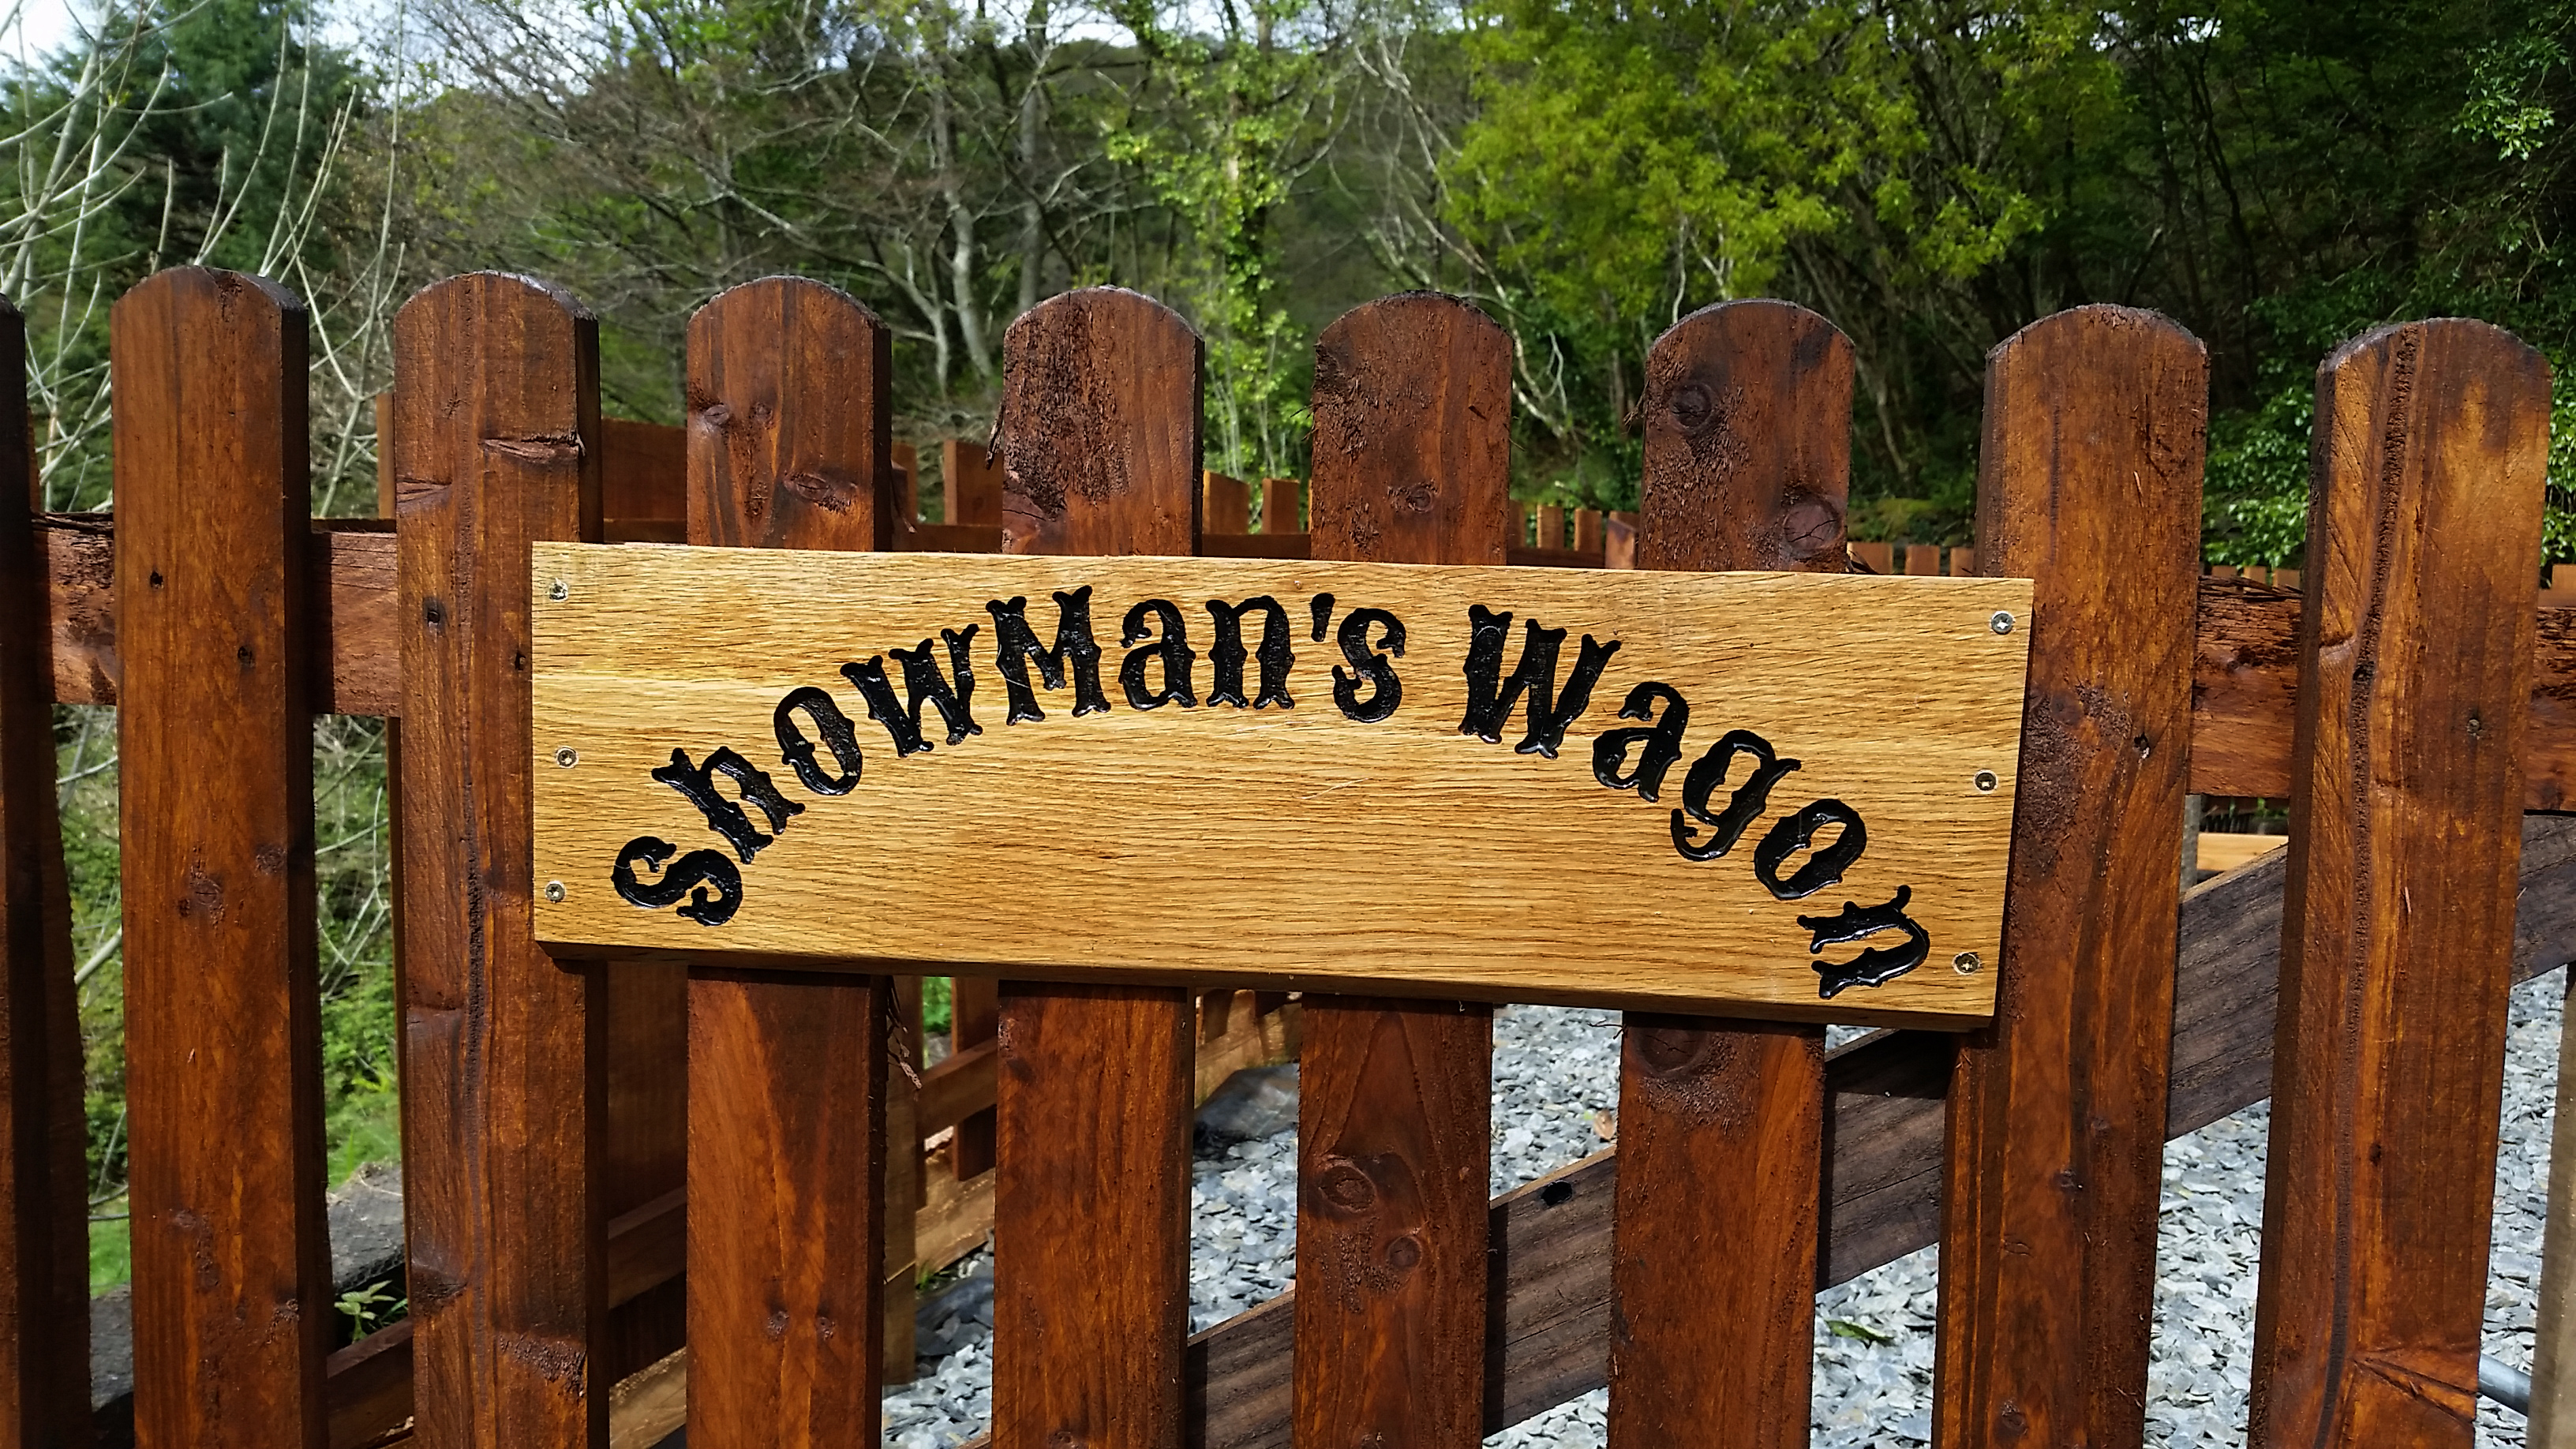 The sign on the gate